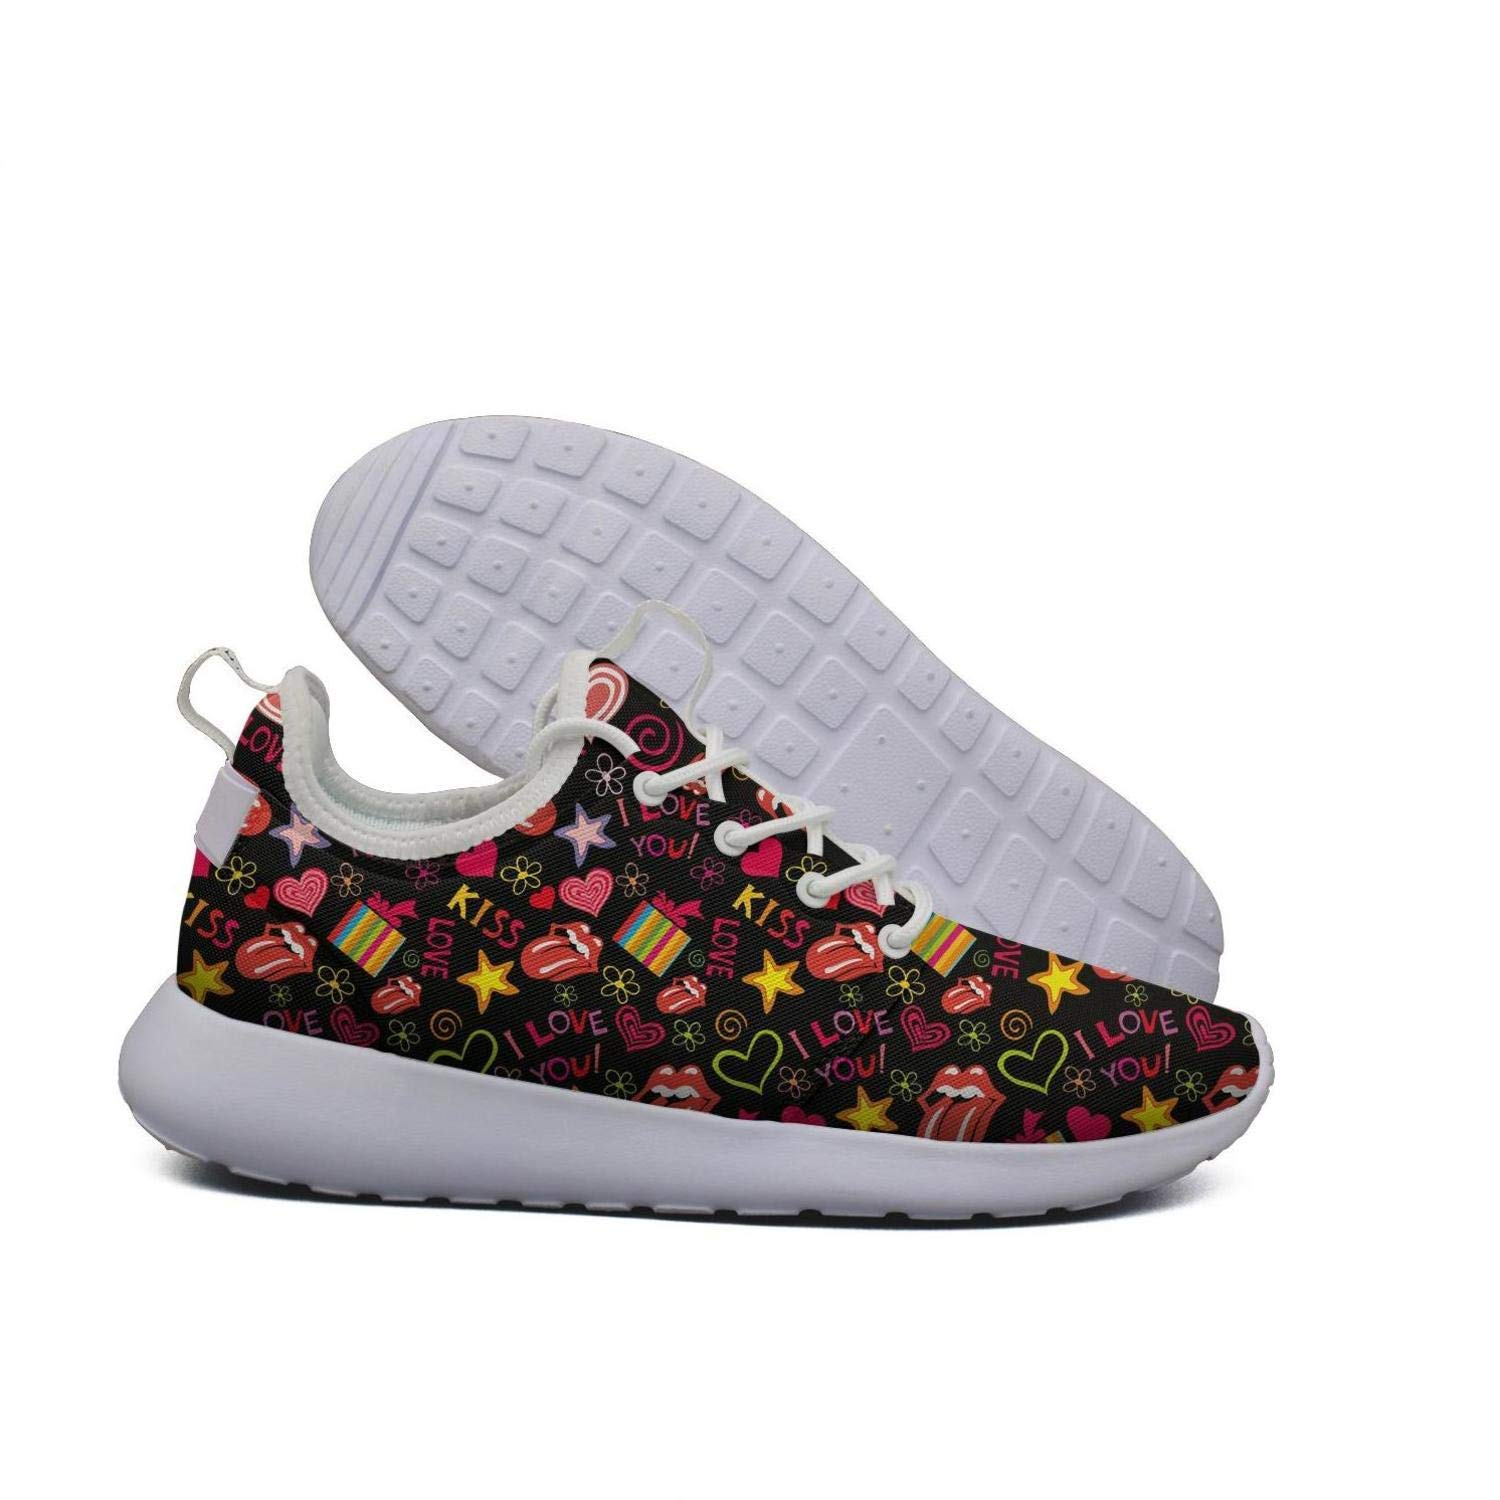 Hoohle Sports Womens red Lip Phone Flex Mesh Roshe 2 Lightweight Breathable Cross-Trainer Shoes